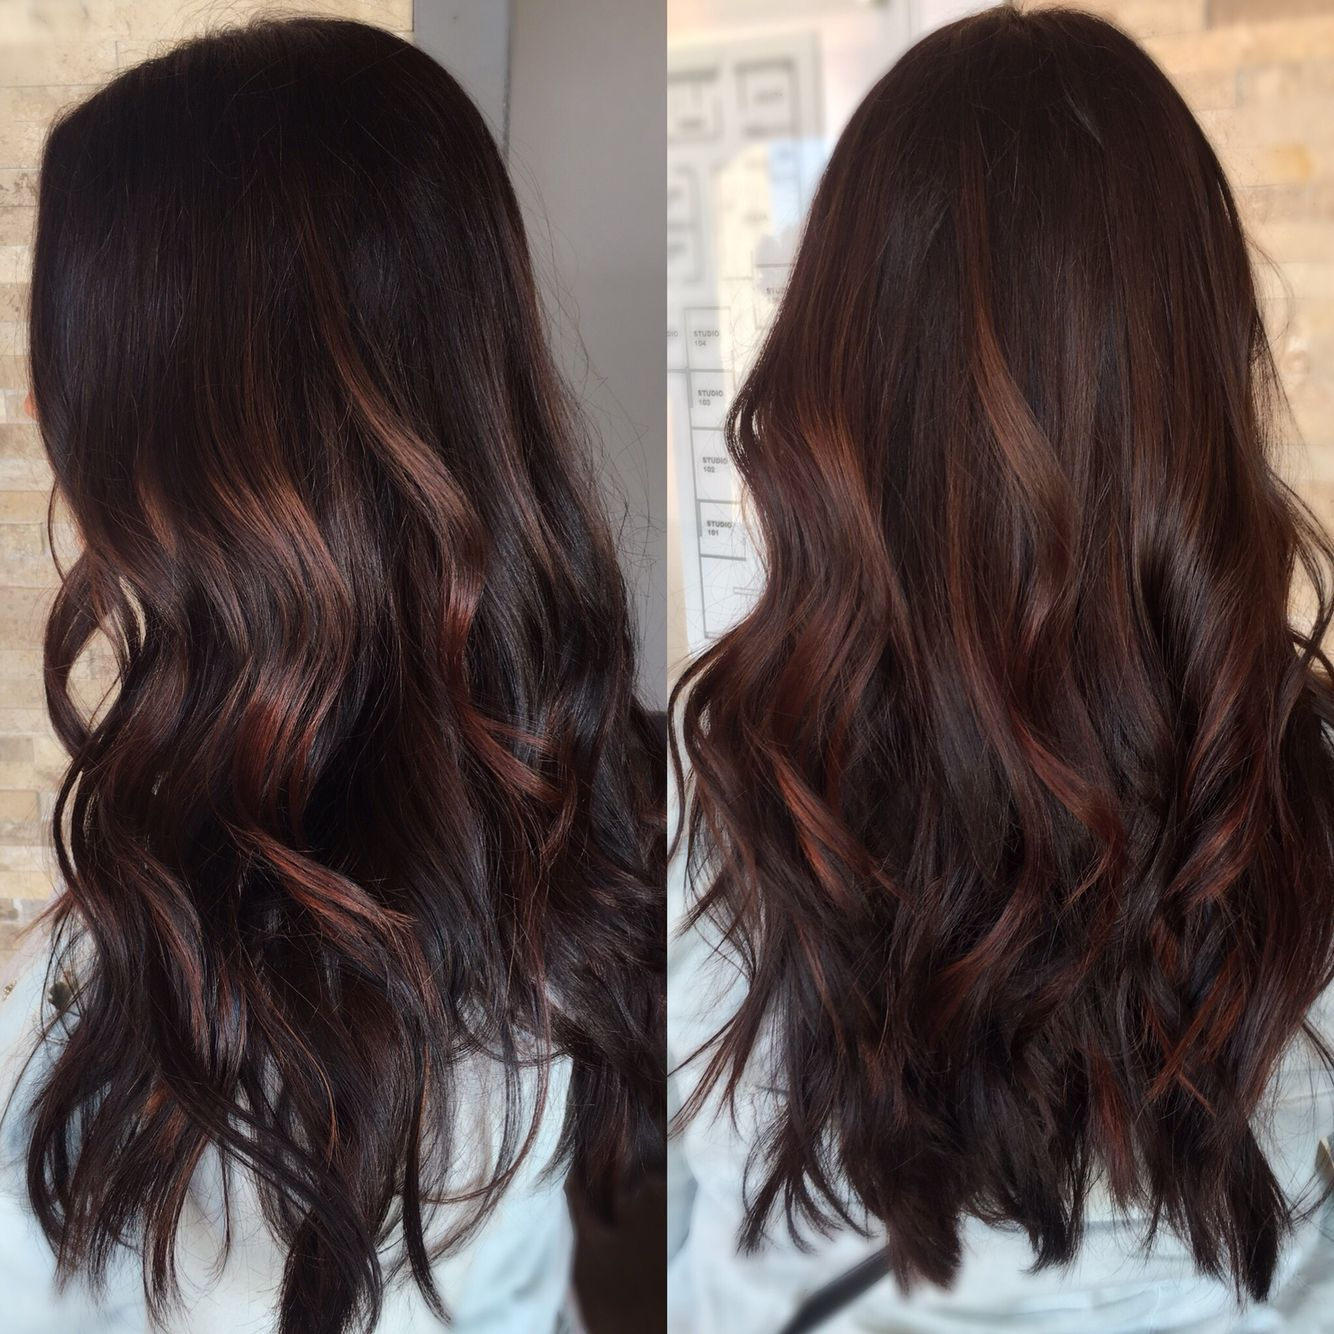 Black Hair With Subtle Red Highlights Black Hair With Blonde And